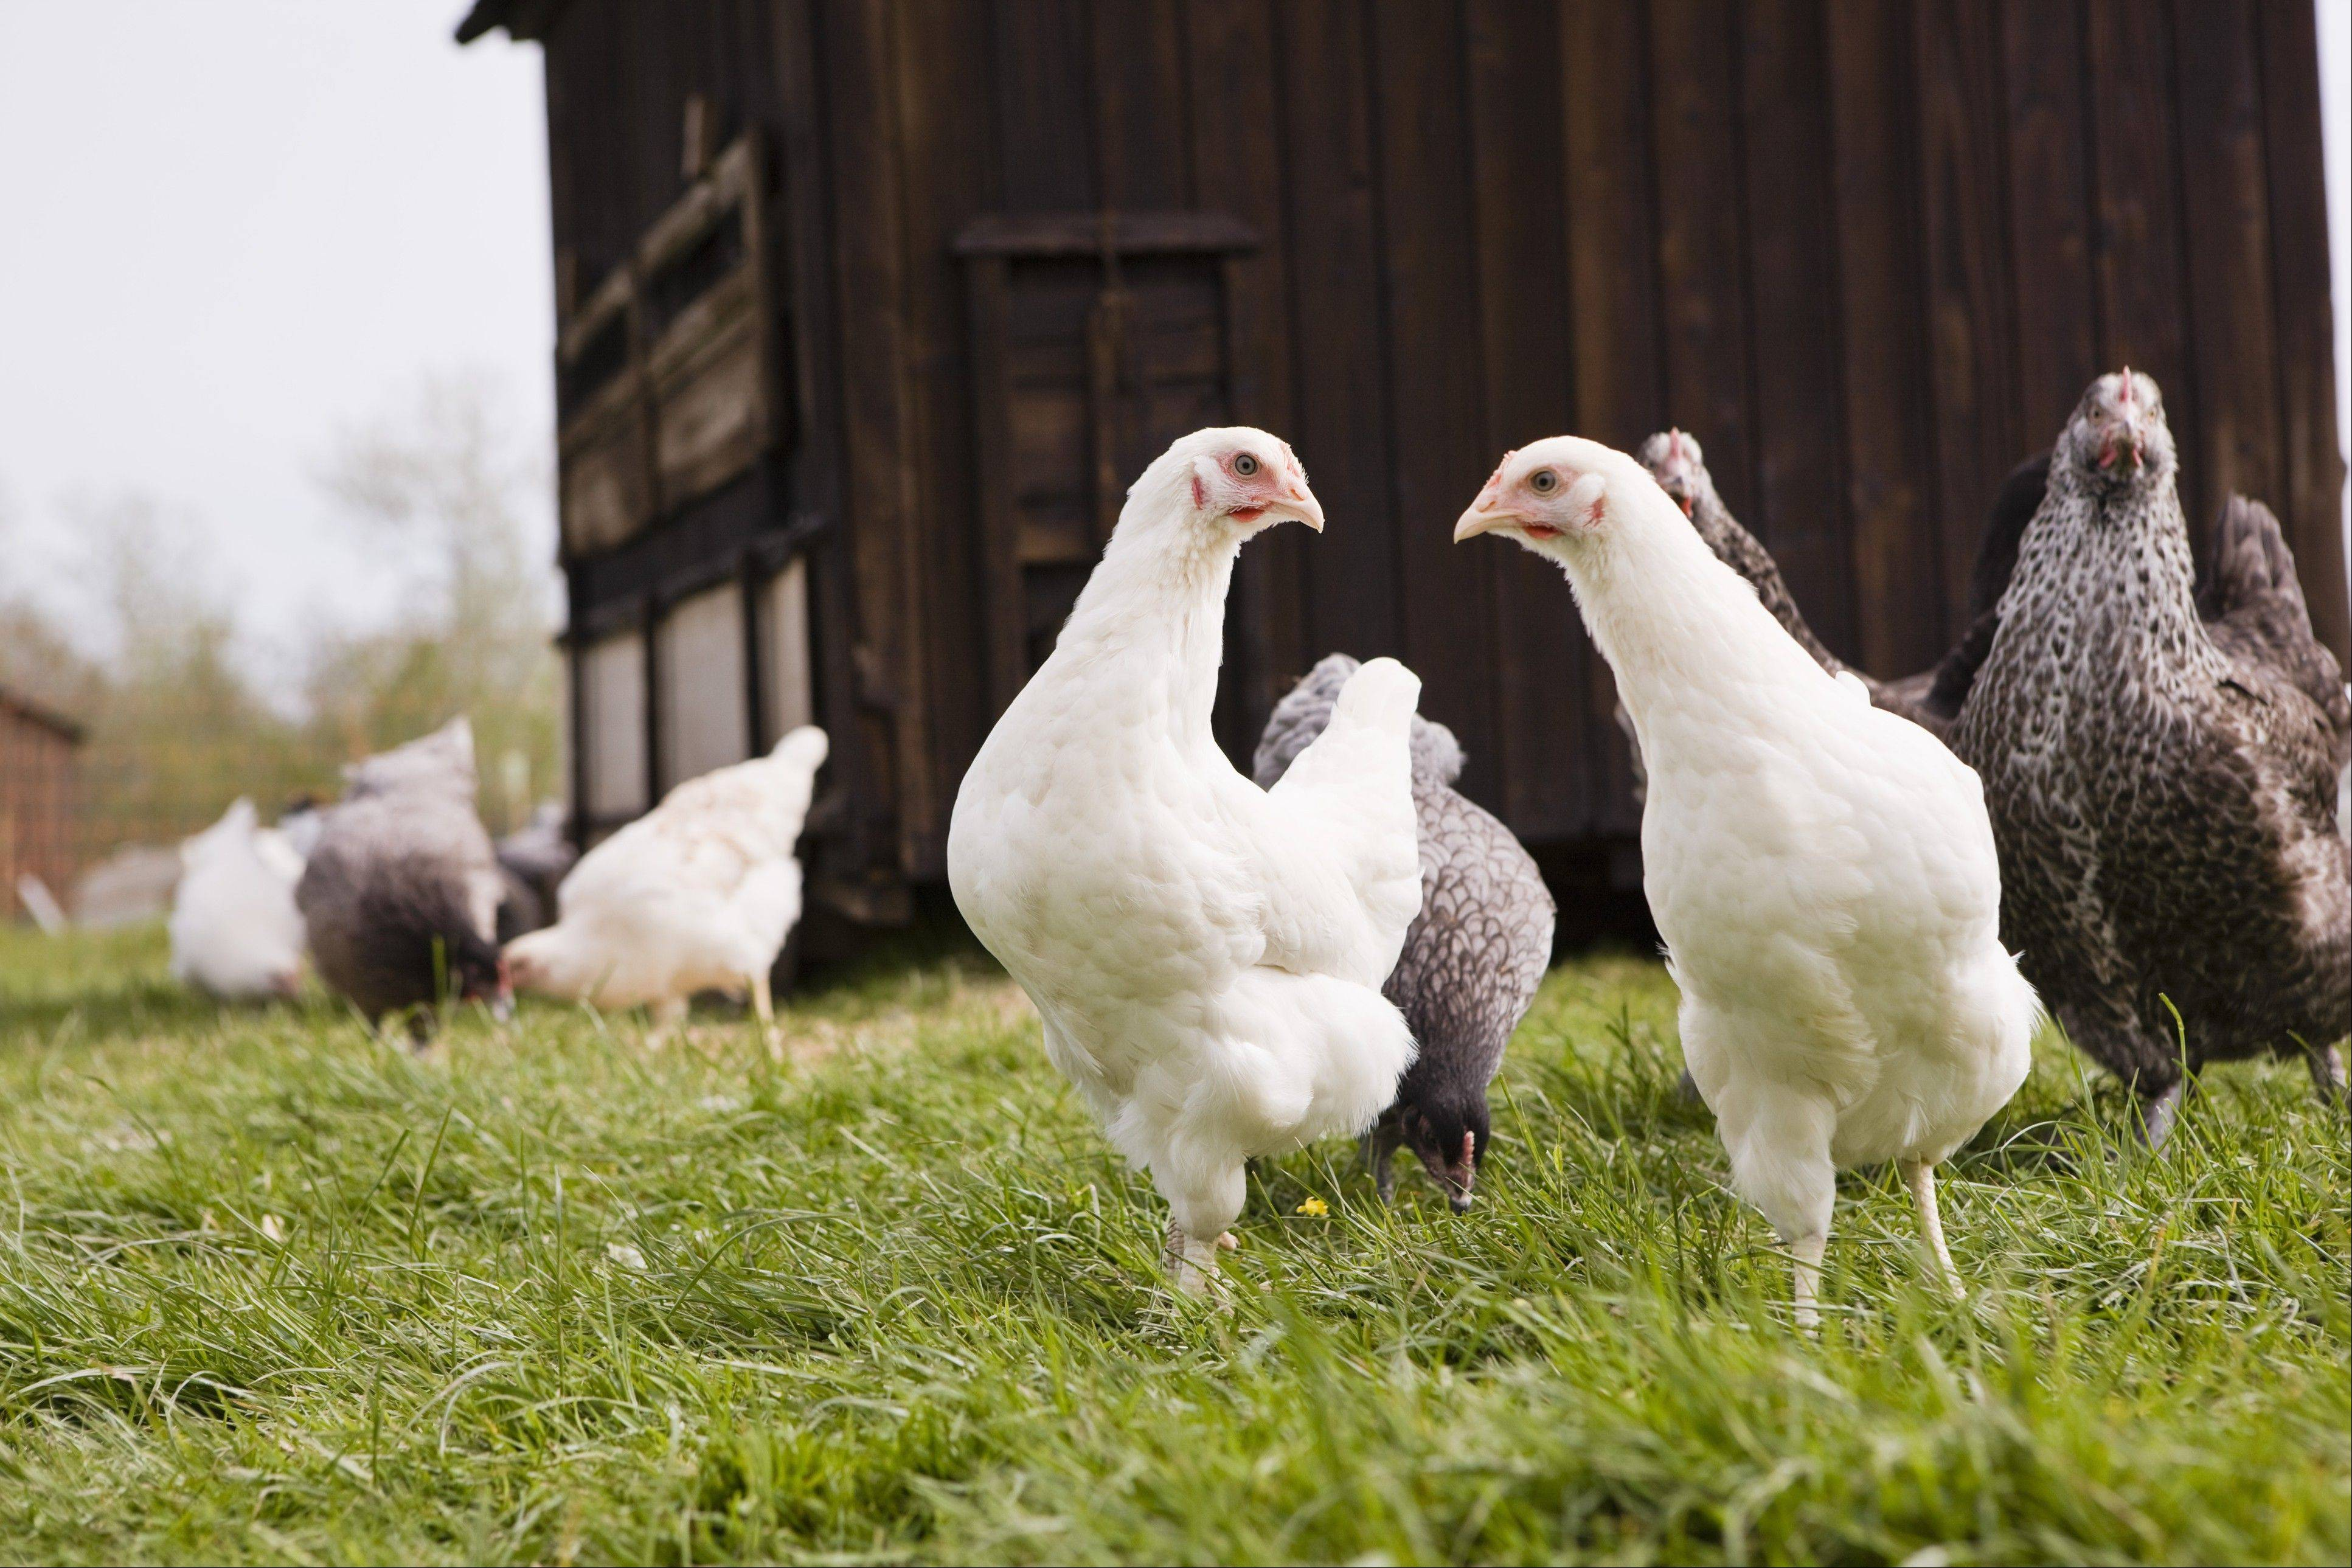 Missouri's attorney general has asked a federal court to strike down a California law regulating the living conditions of chickens, setting up a cross-country battle that pits new animal protections against the economic interests of Midwestern farmers.